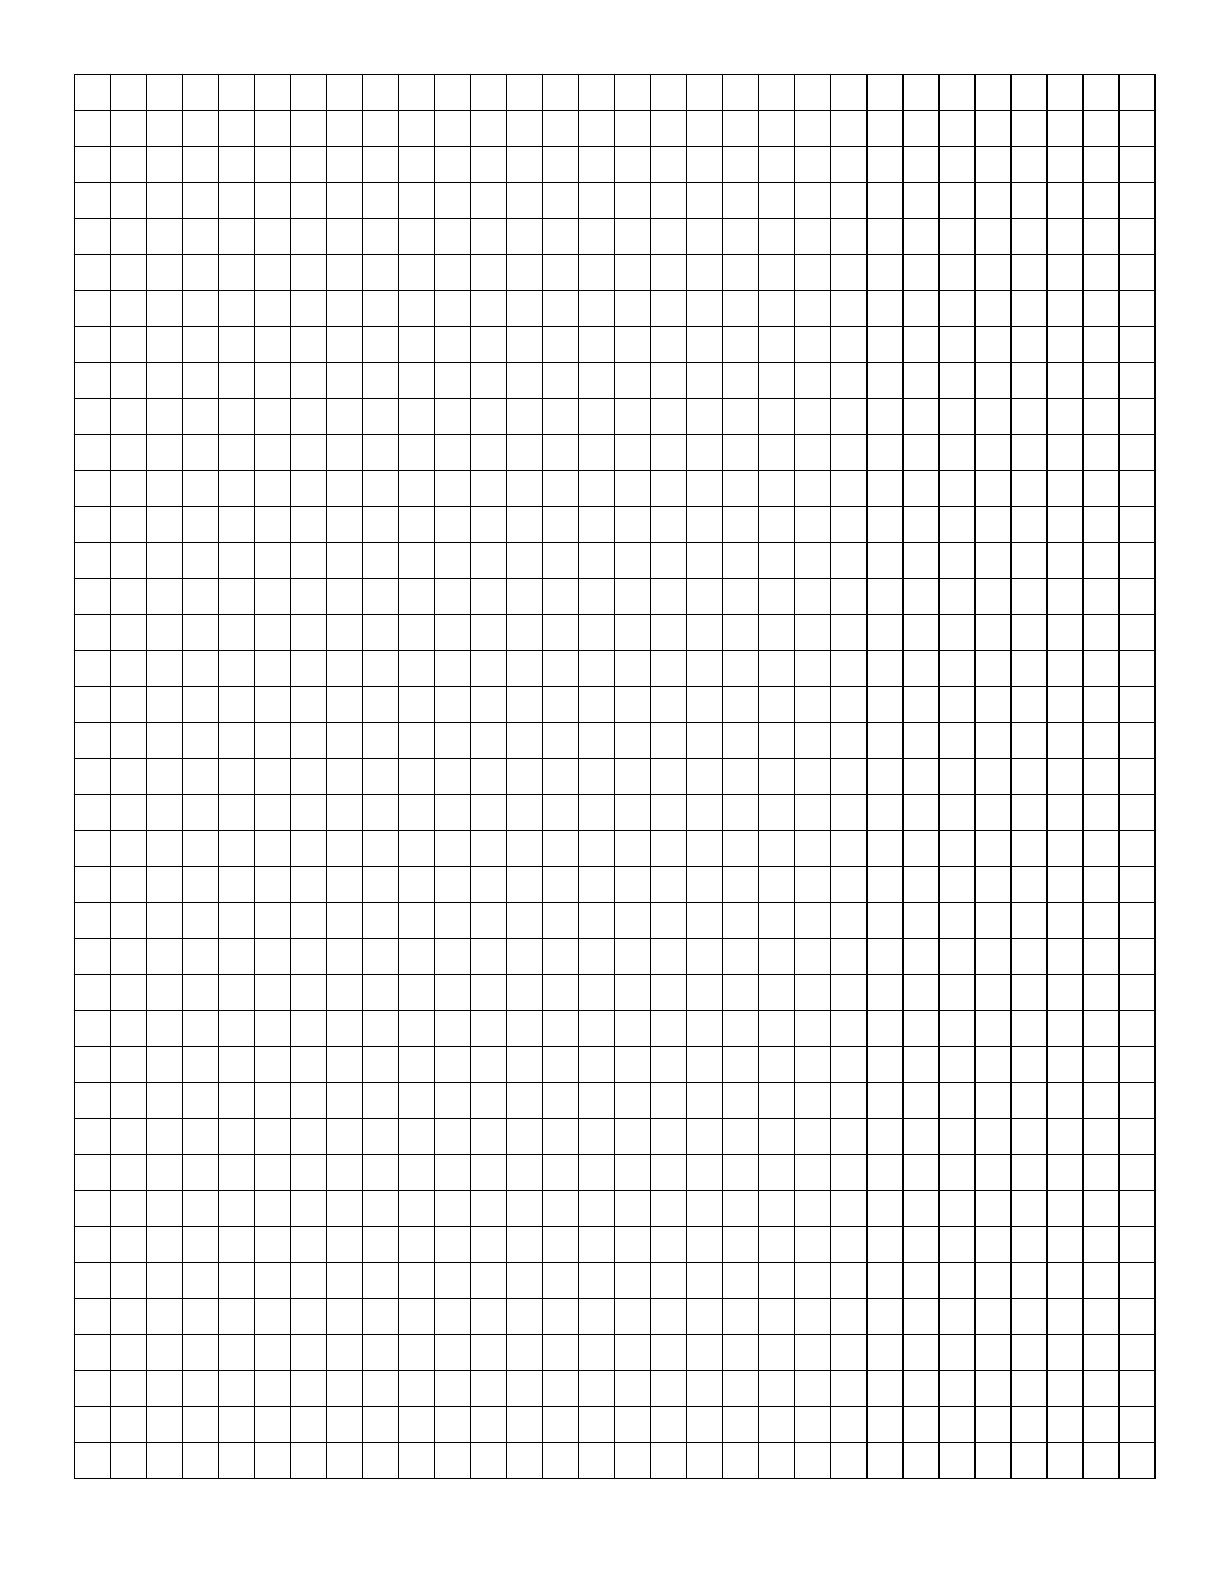 1x1 grid graph paper free download